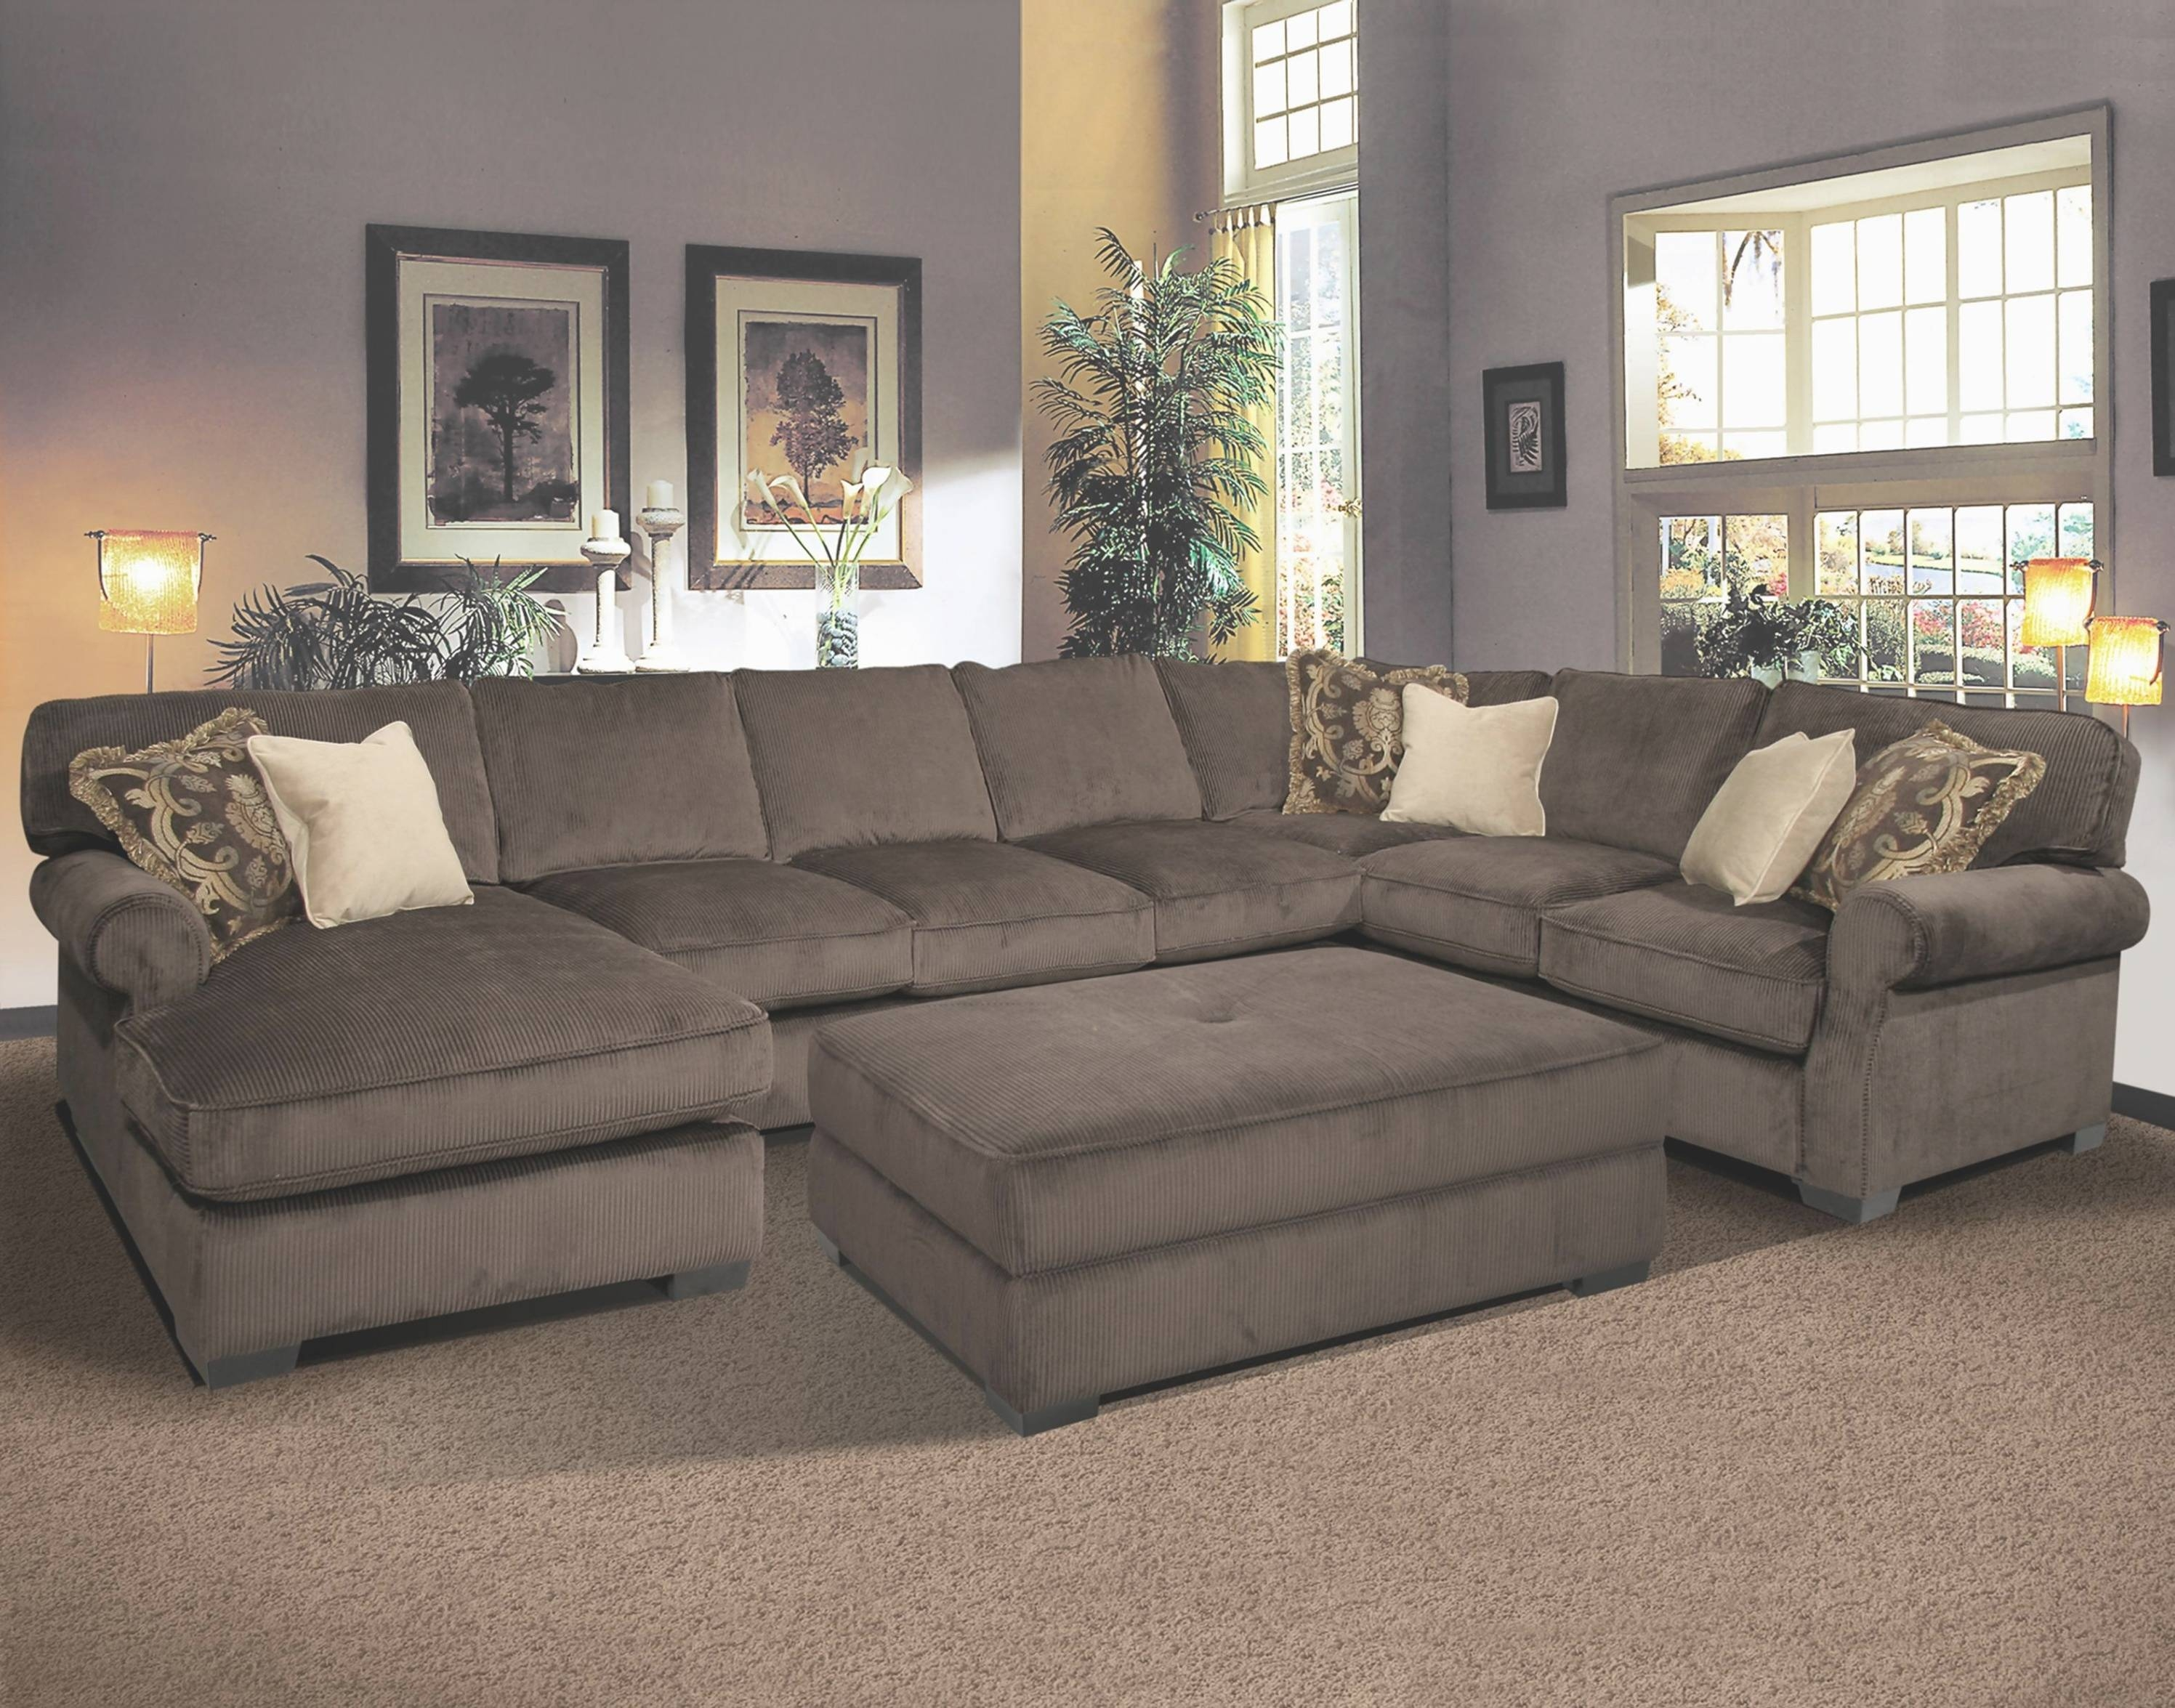 Sofas Center : Large Sectional Sofa With Chaise Sofas For Home for Extra Large Sectional Sofas (Image 24 of 30)